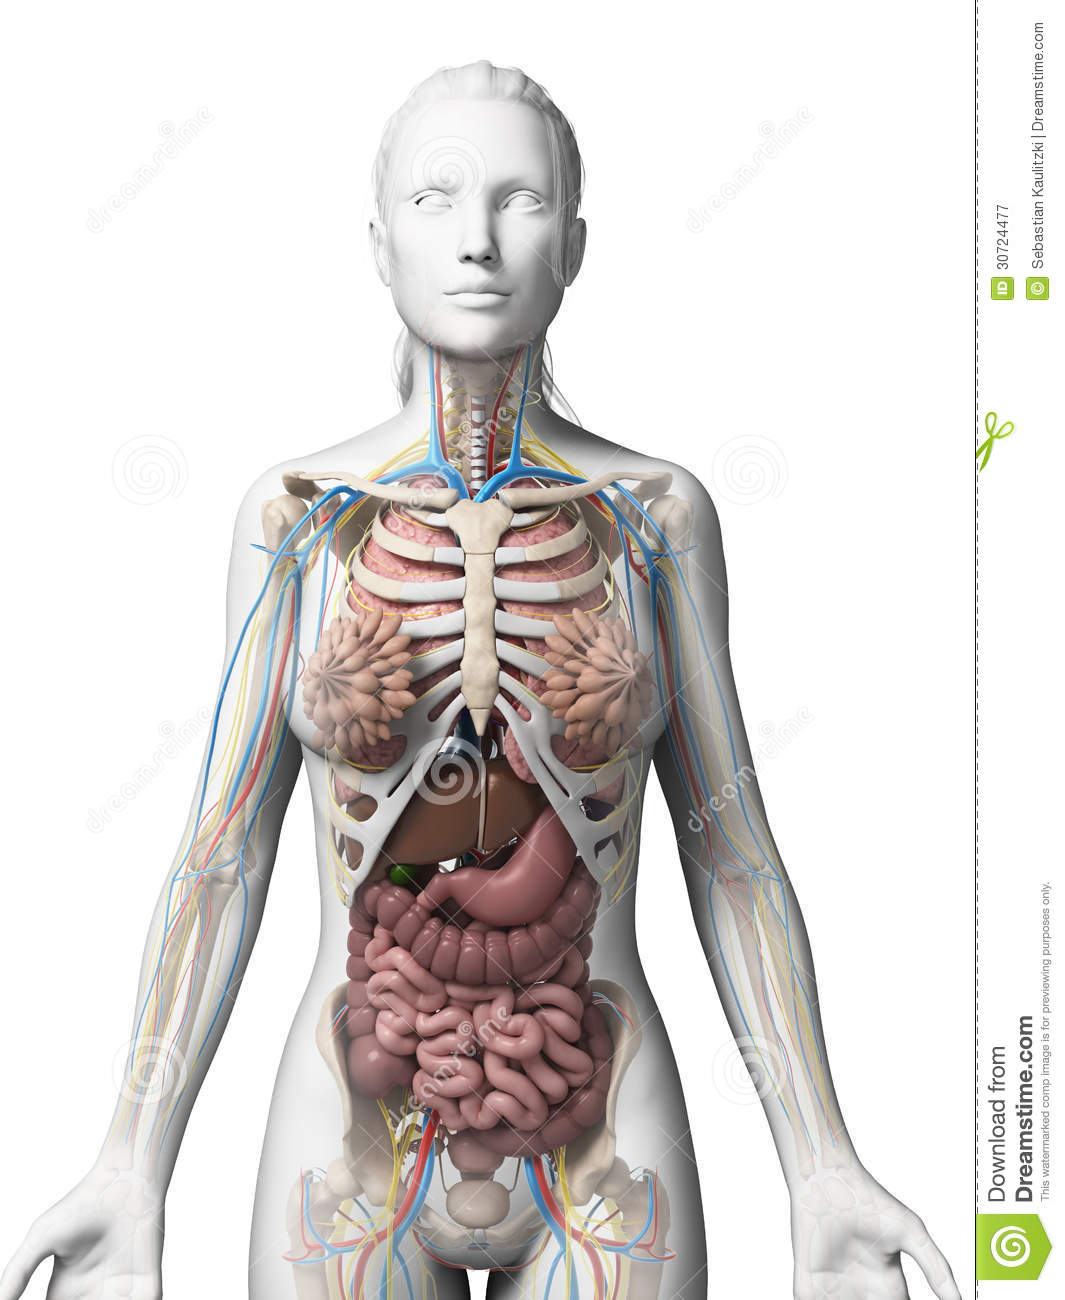 lungs human anatomy diagram nissan frontier timing chain female royalty free stock photography - image: 30724477